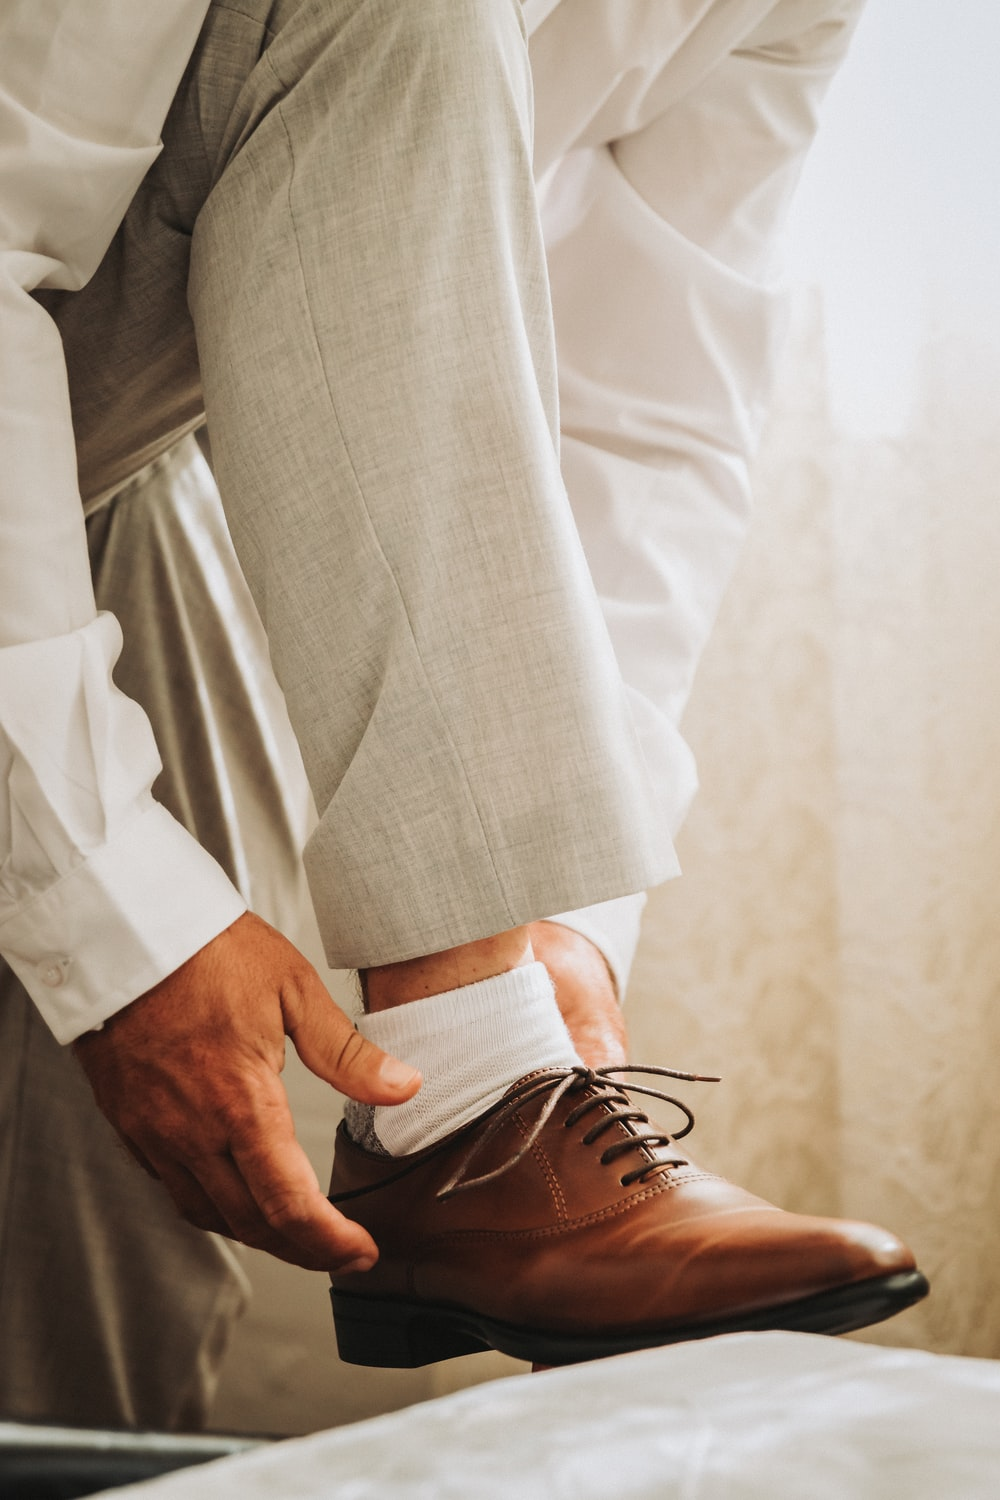 person in gray formal suit jacket wearing brown leather shoes